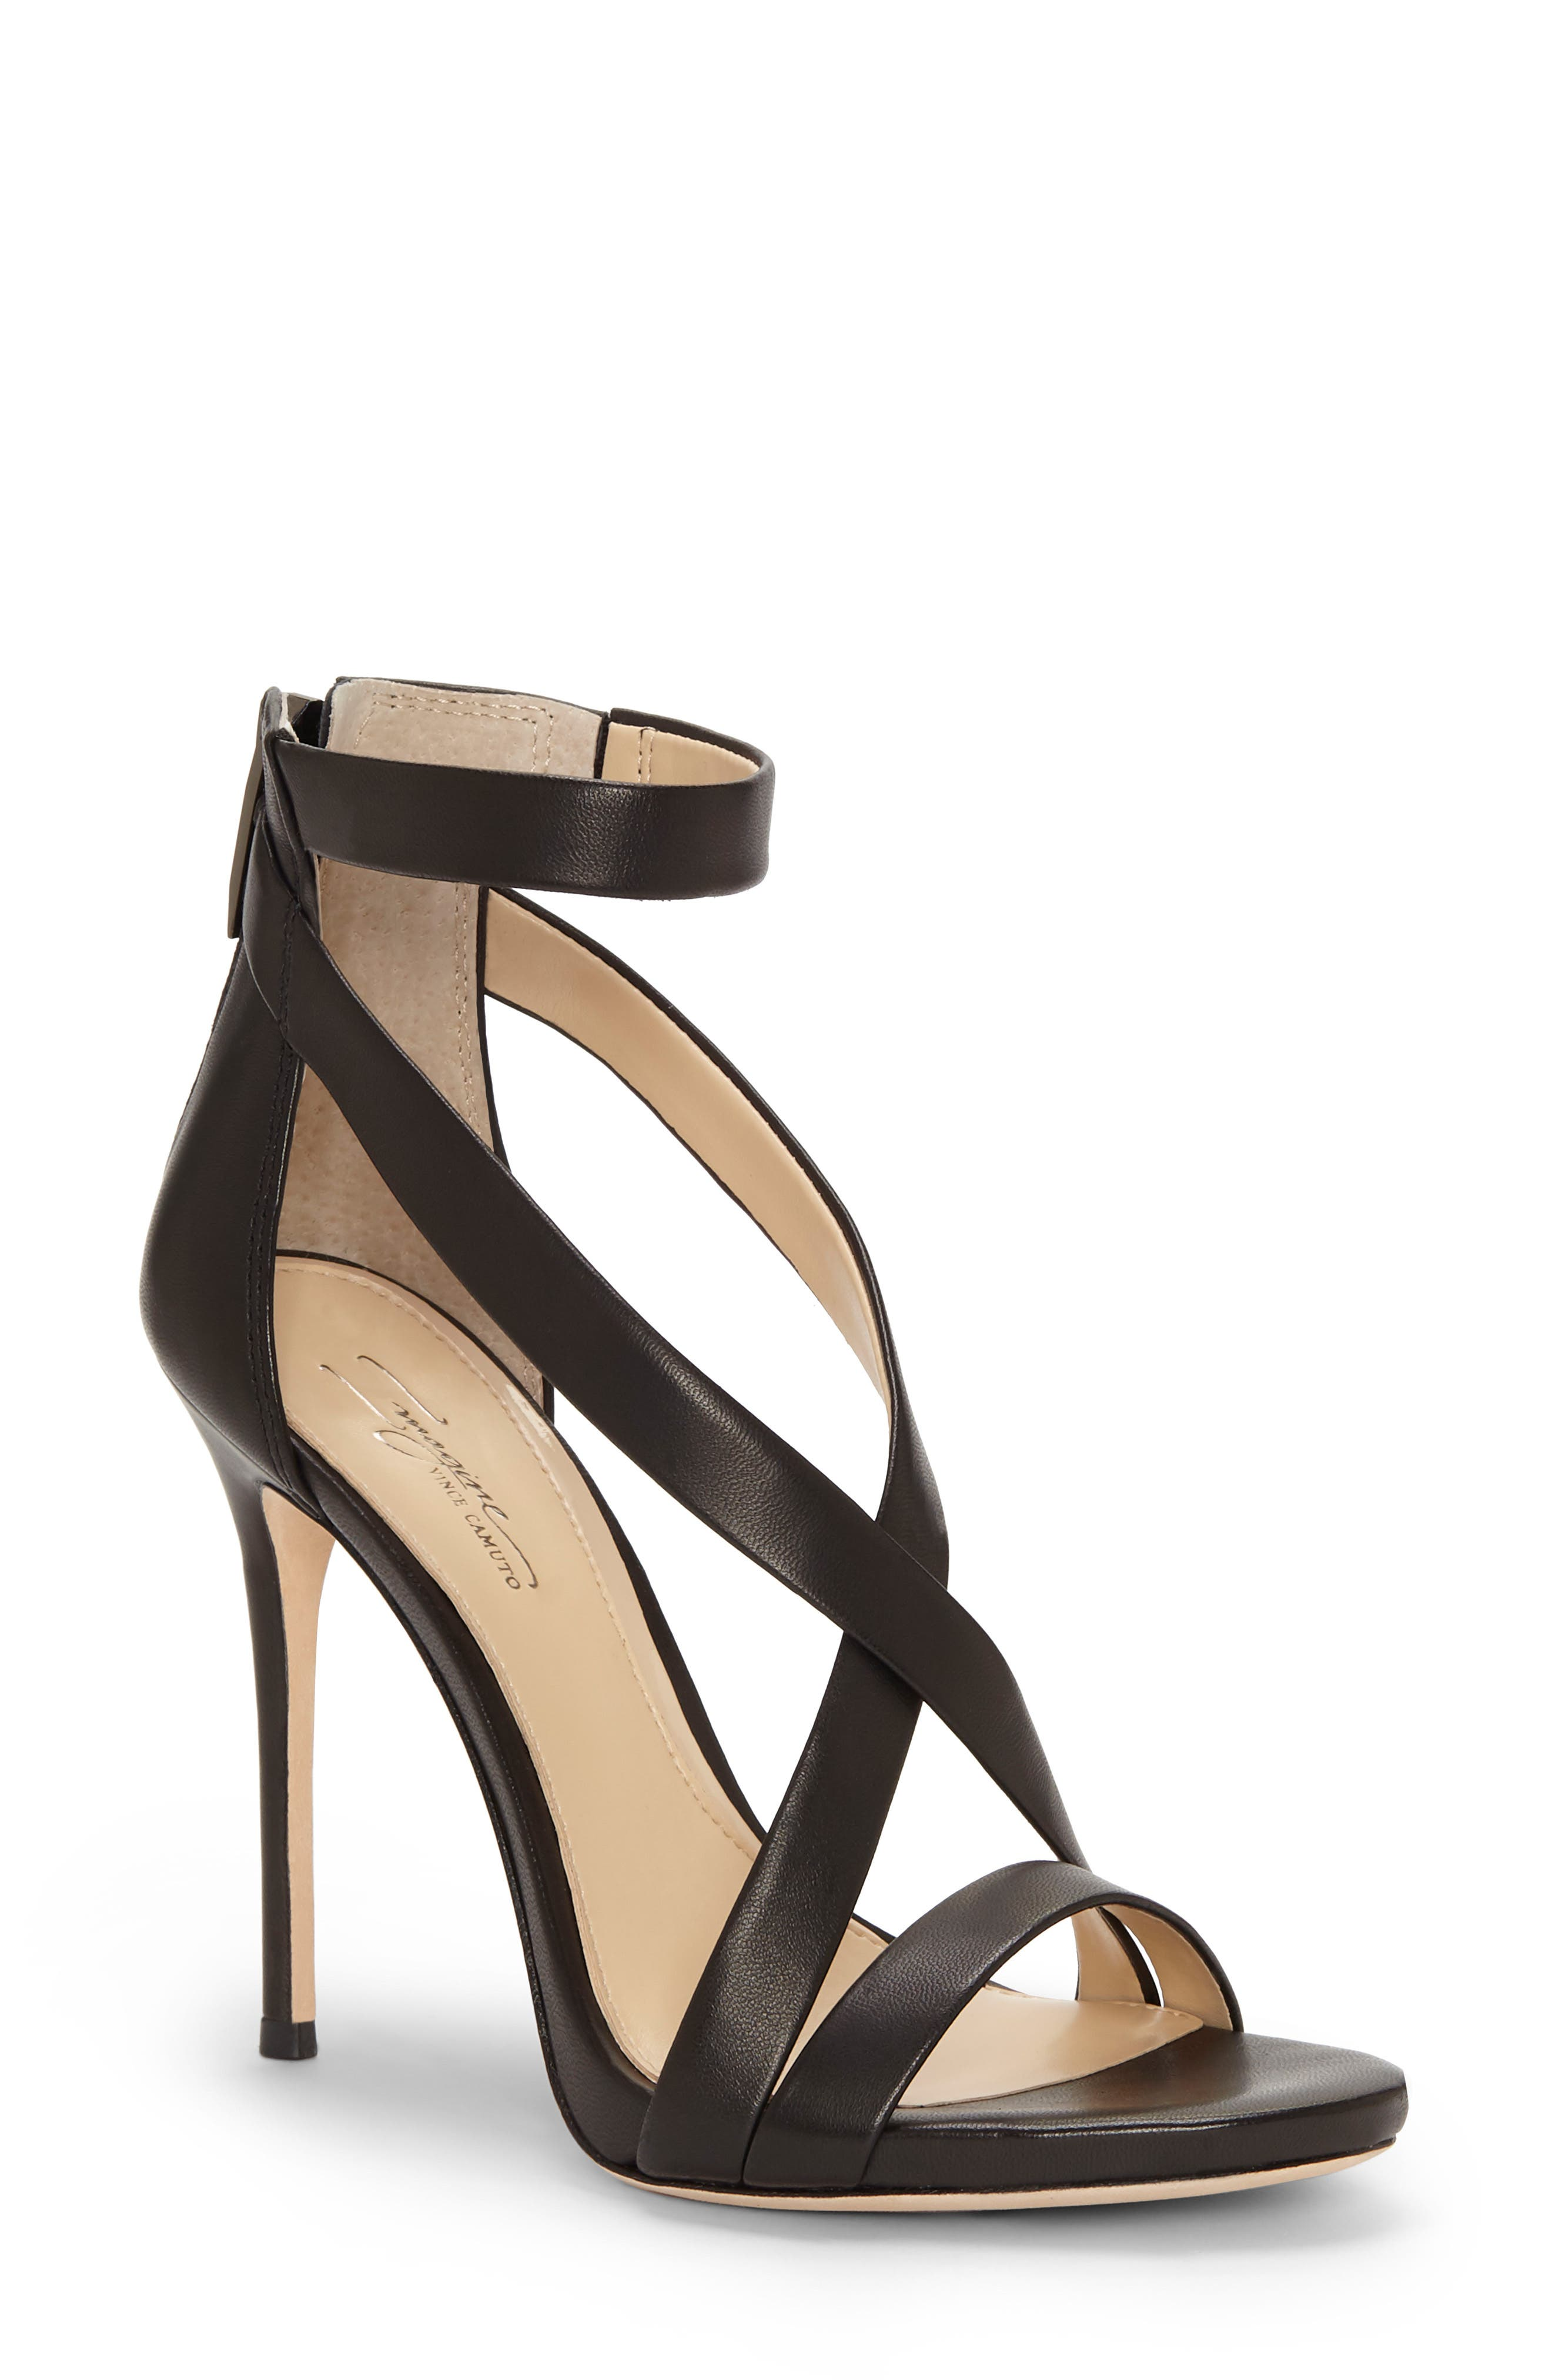 Damens's Schuhes Imagine By Vince Camuto Schuhes Damens's   Nordstrom f42bc0